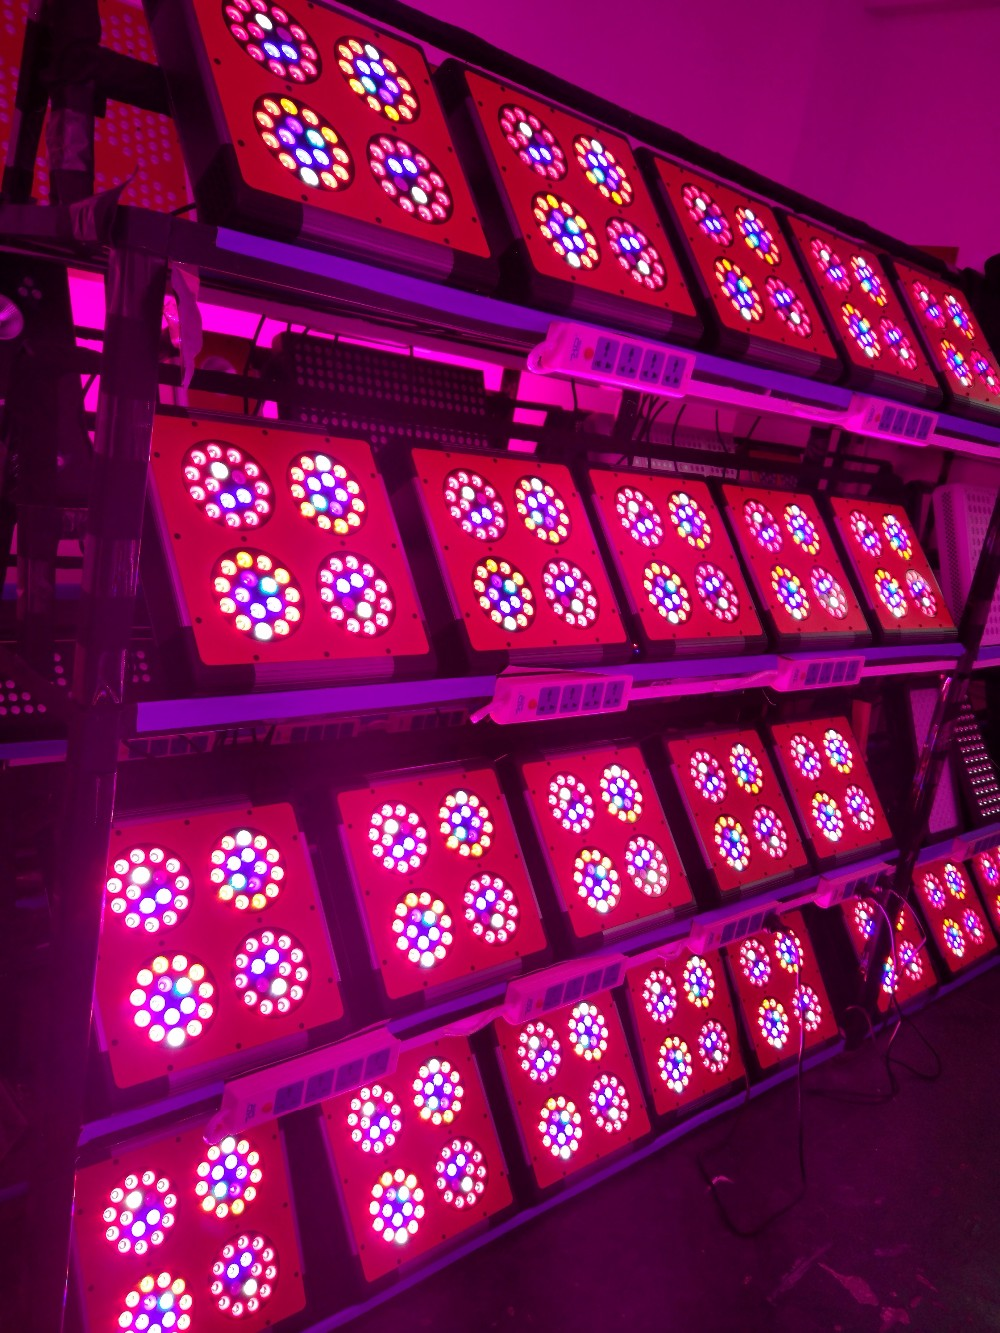 45W LED Grow Light UV IR Growing Plant Lamp for Indoor Plants Hydroponic